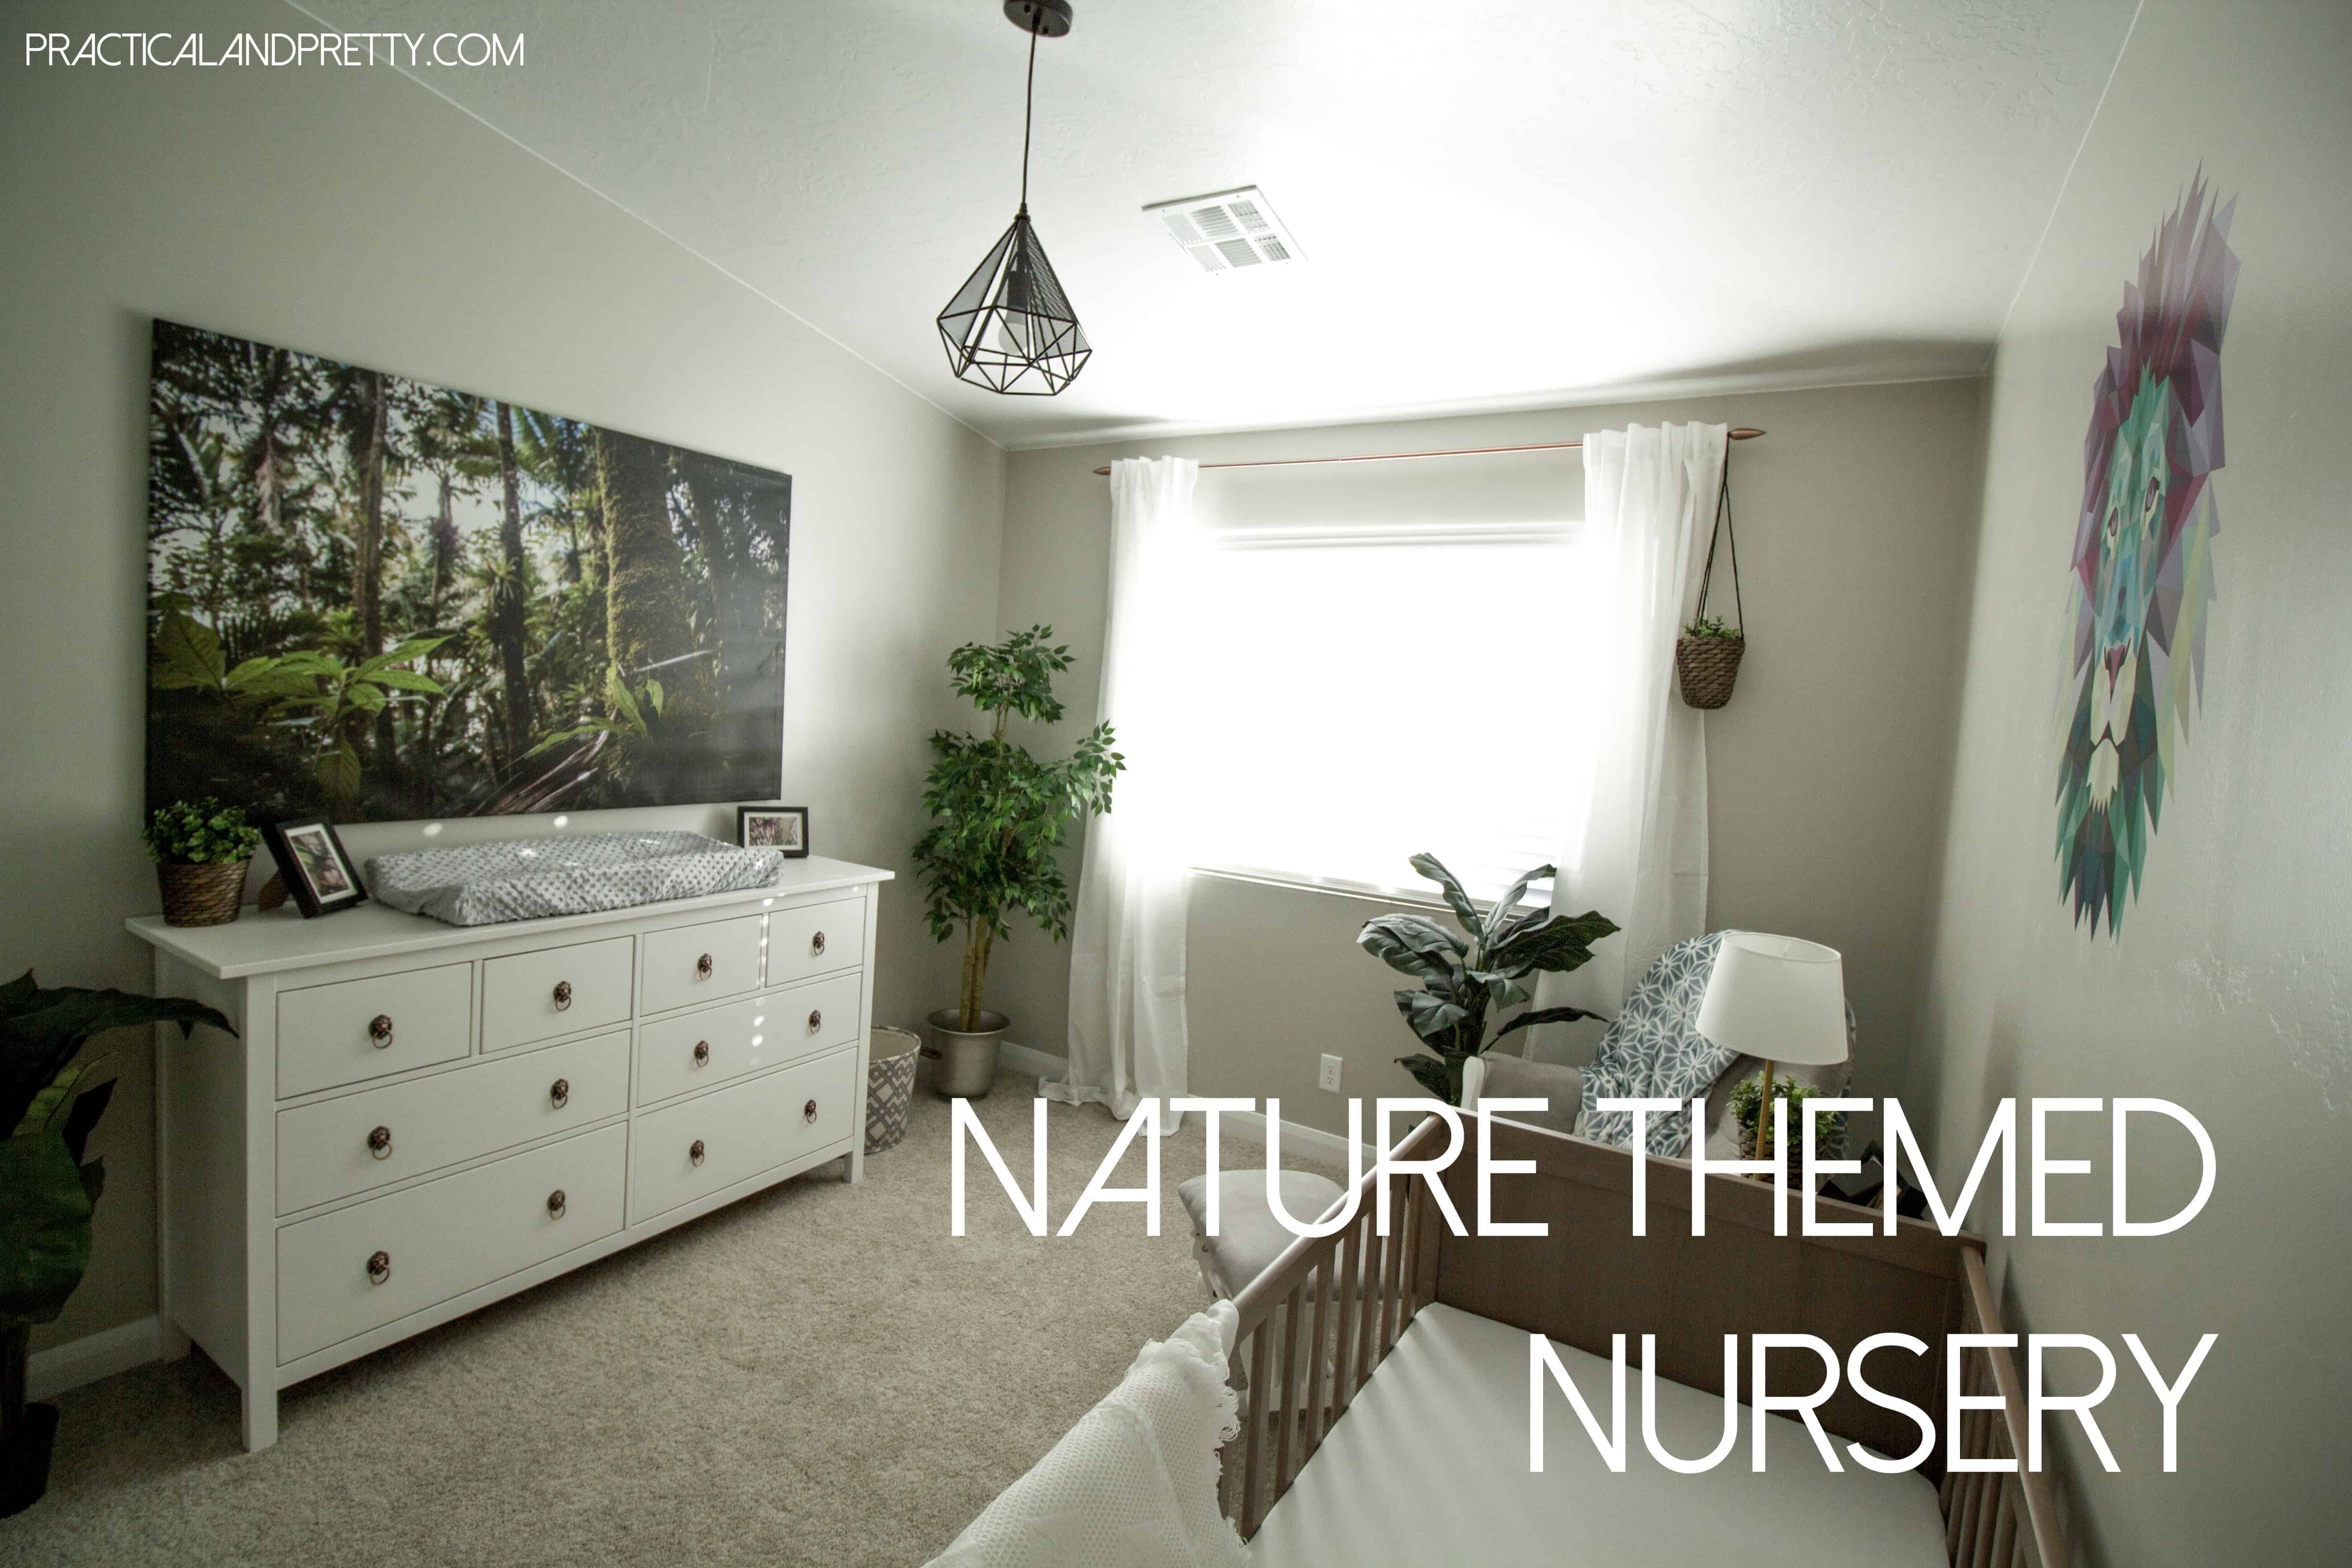 Nature Themed Nursery Reveal Practical And Pretty